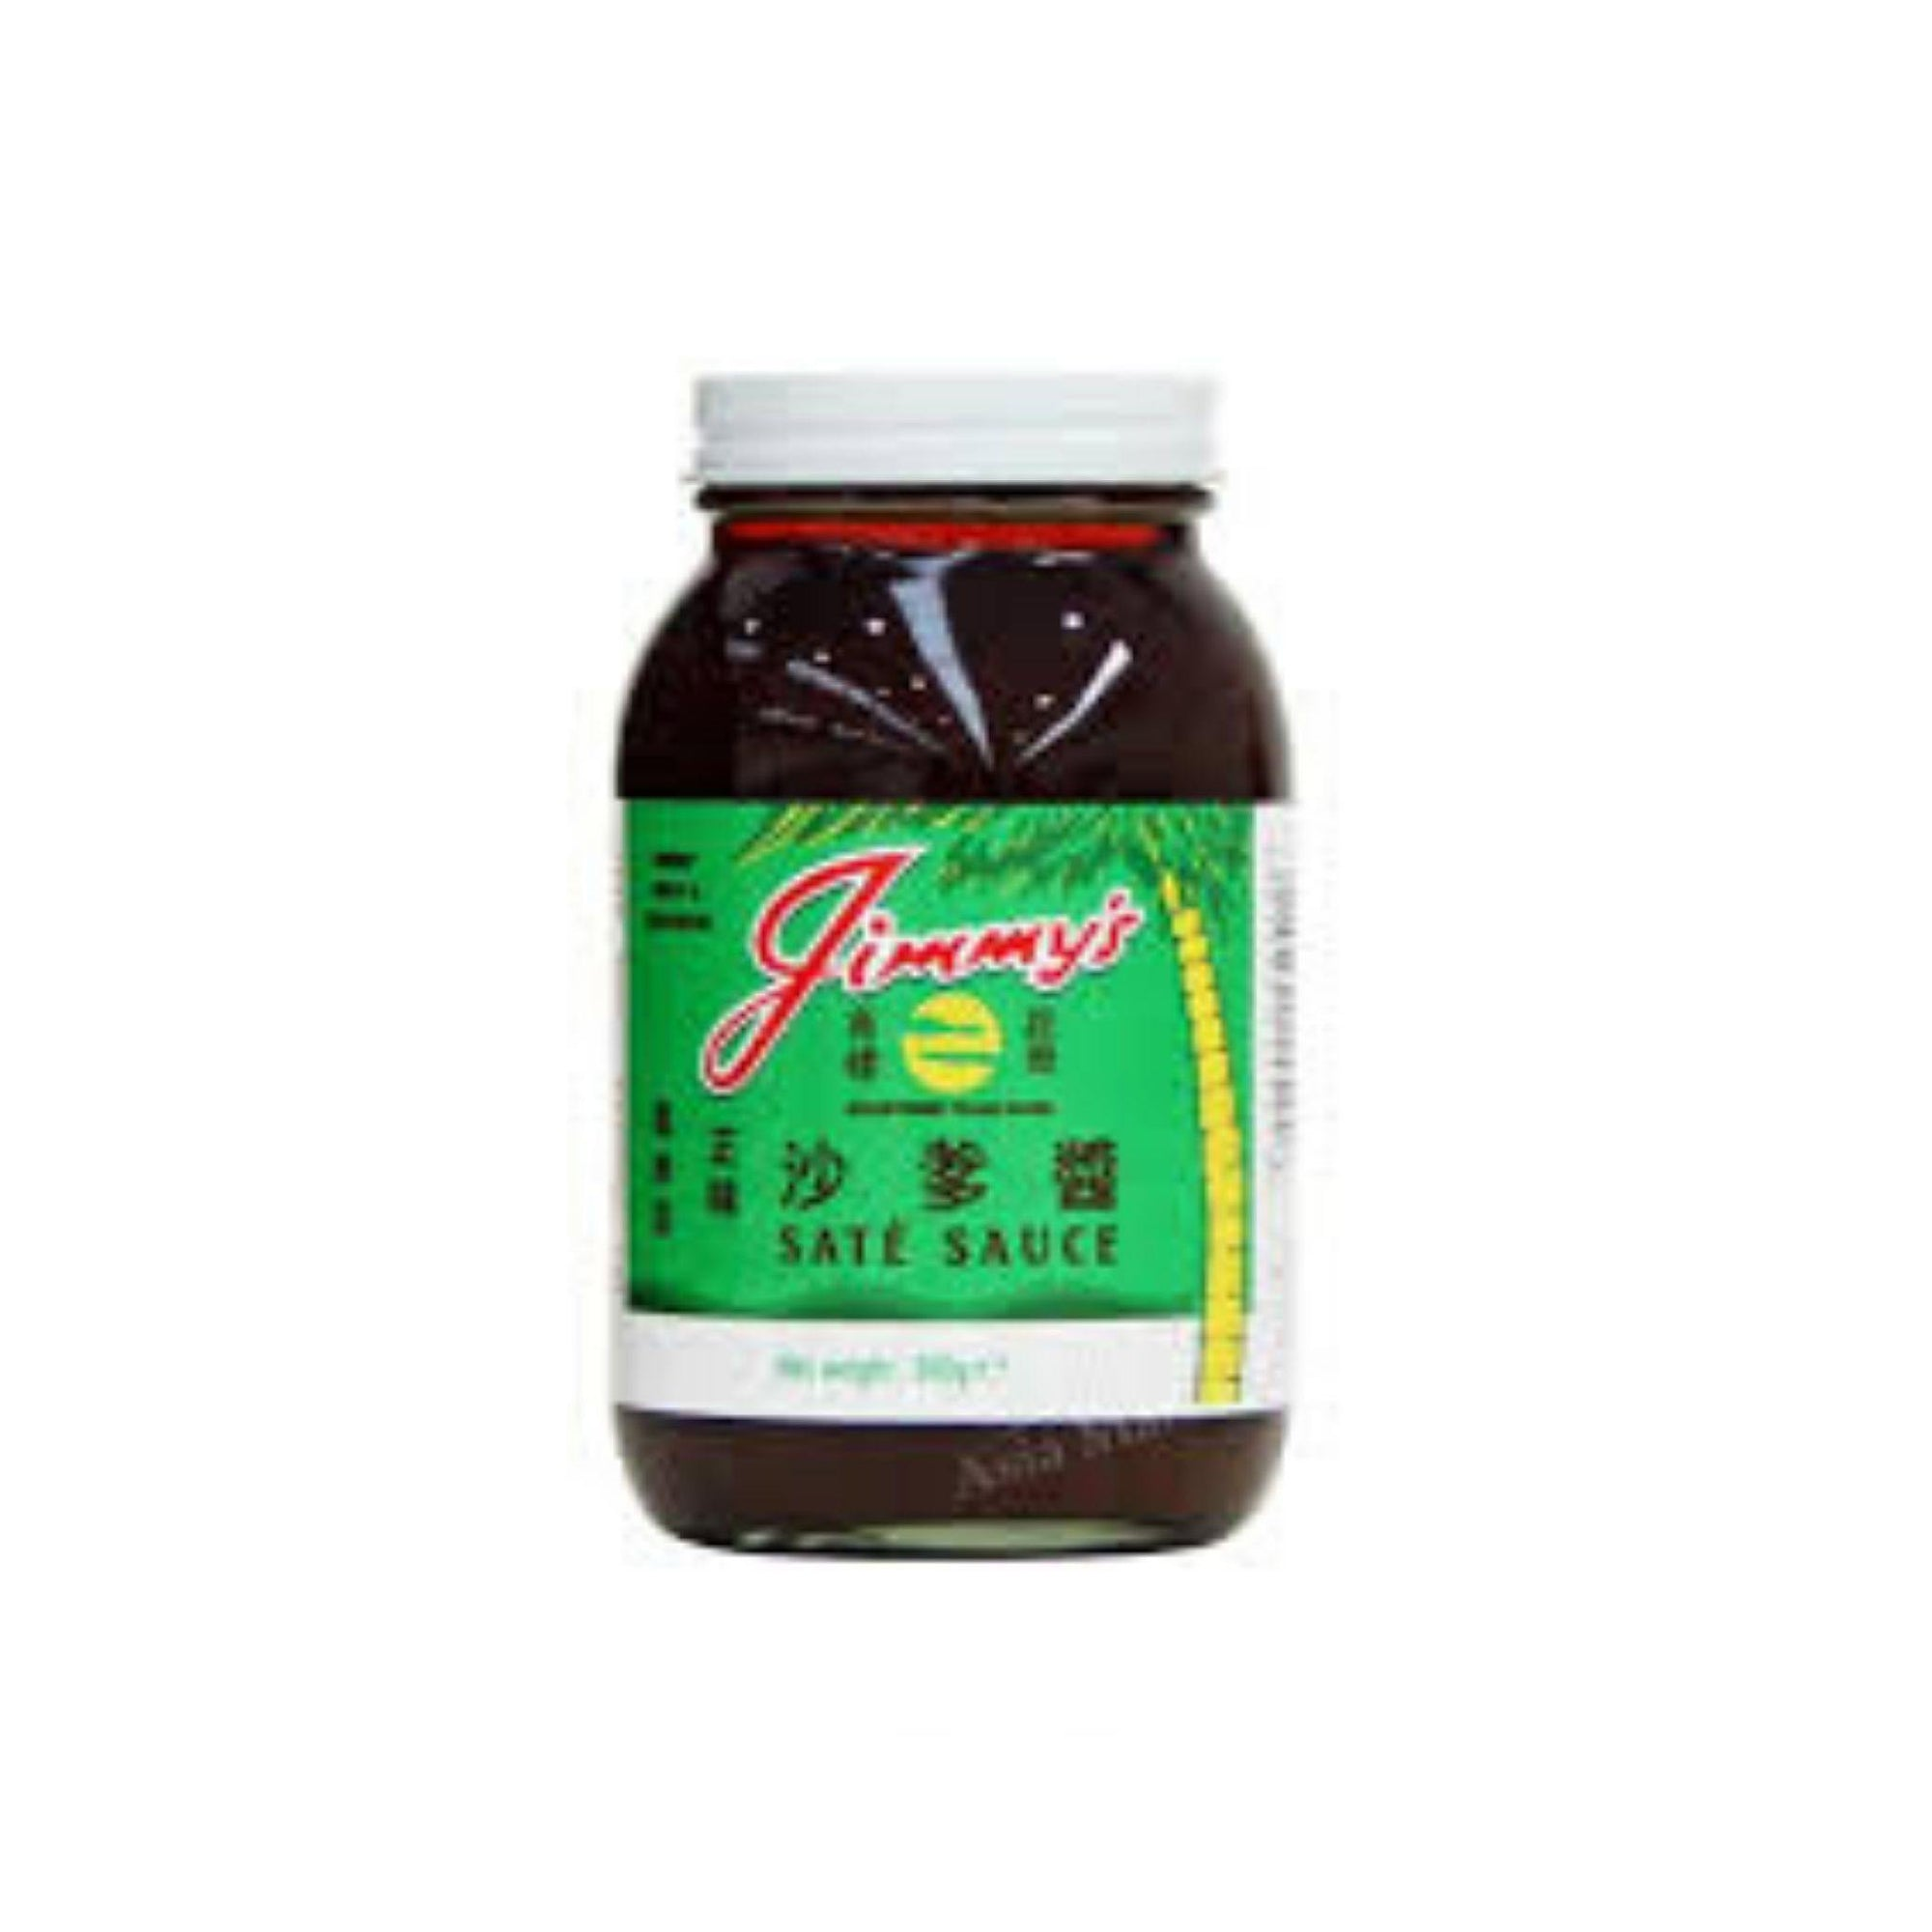 Jimmys Satay Sauce 360G - Asian Harvest